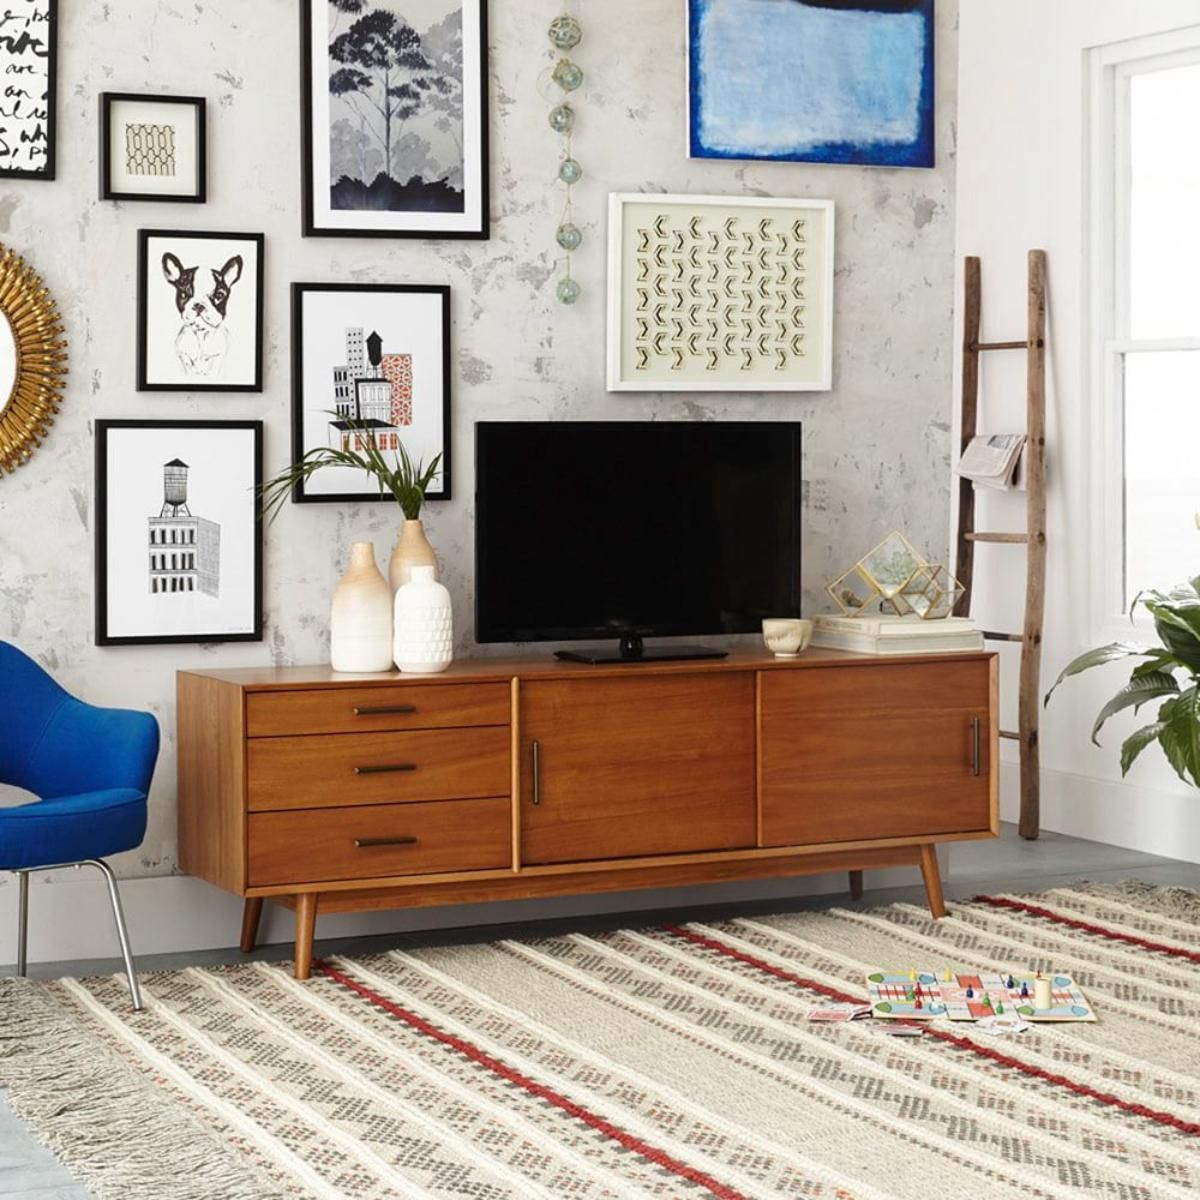 Exceptionnel Living Room Ideas · A Gallery Wall And A Mid Century Media Console Make For  The Perfect Retro Living